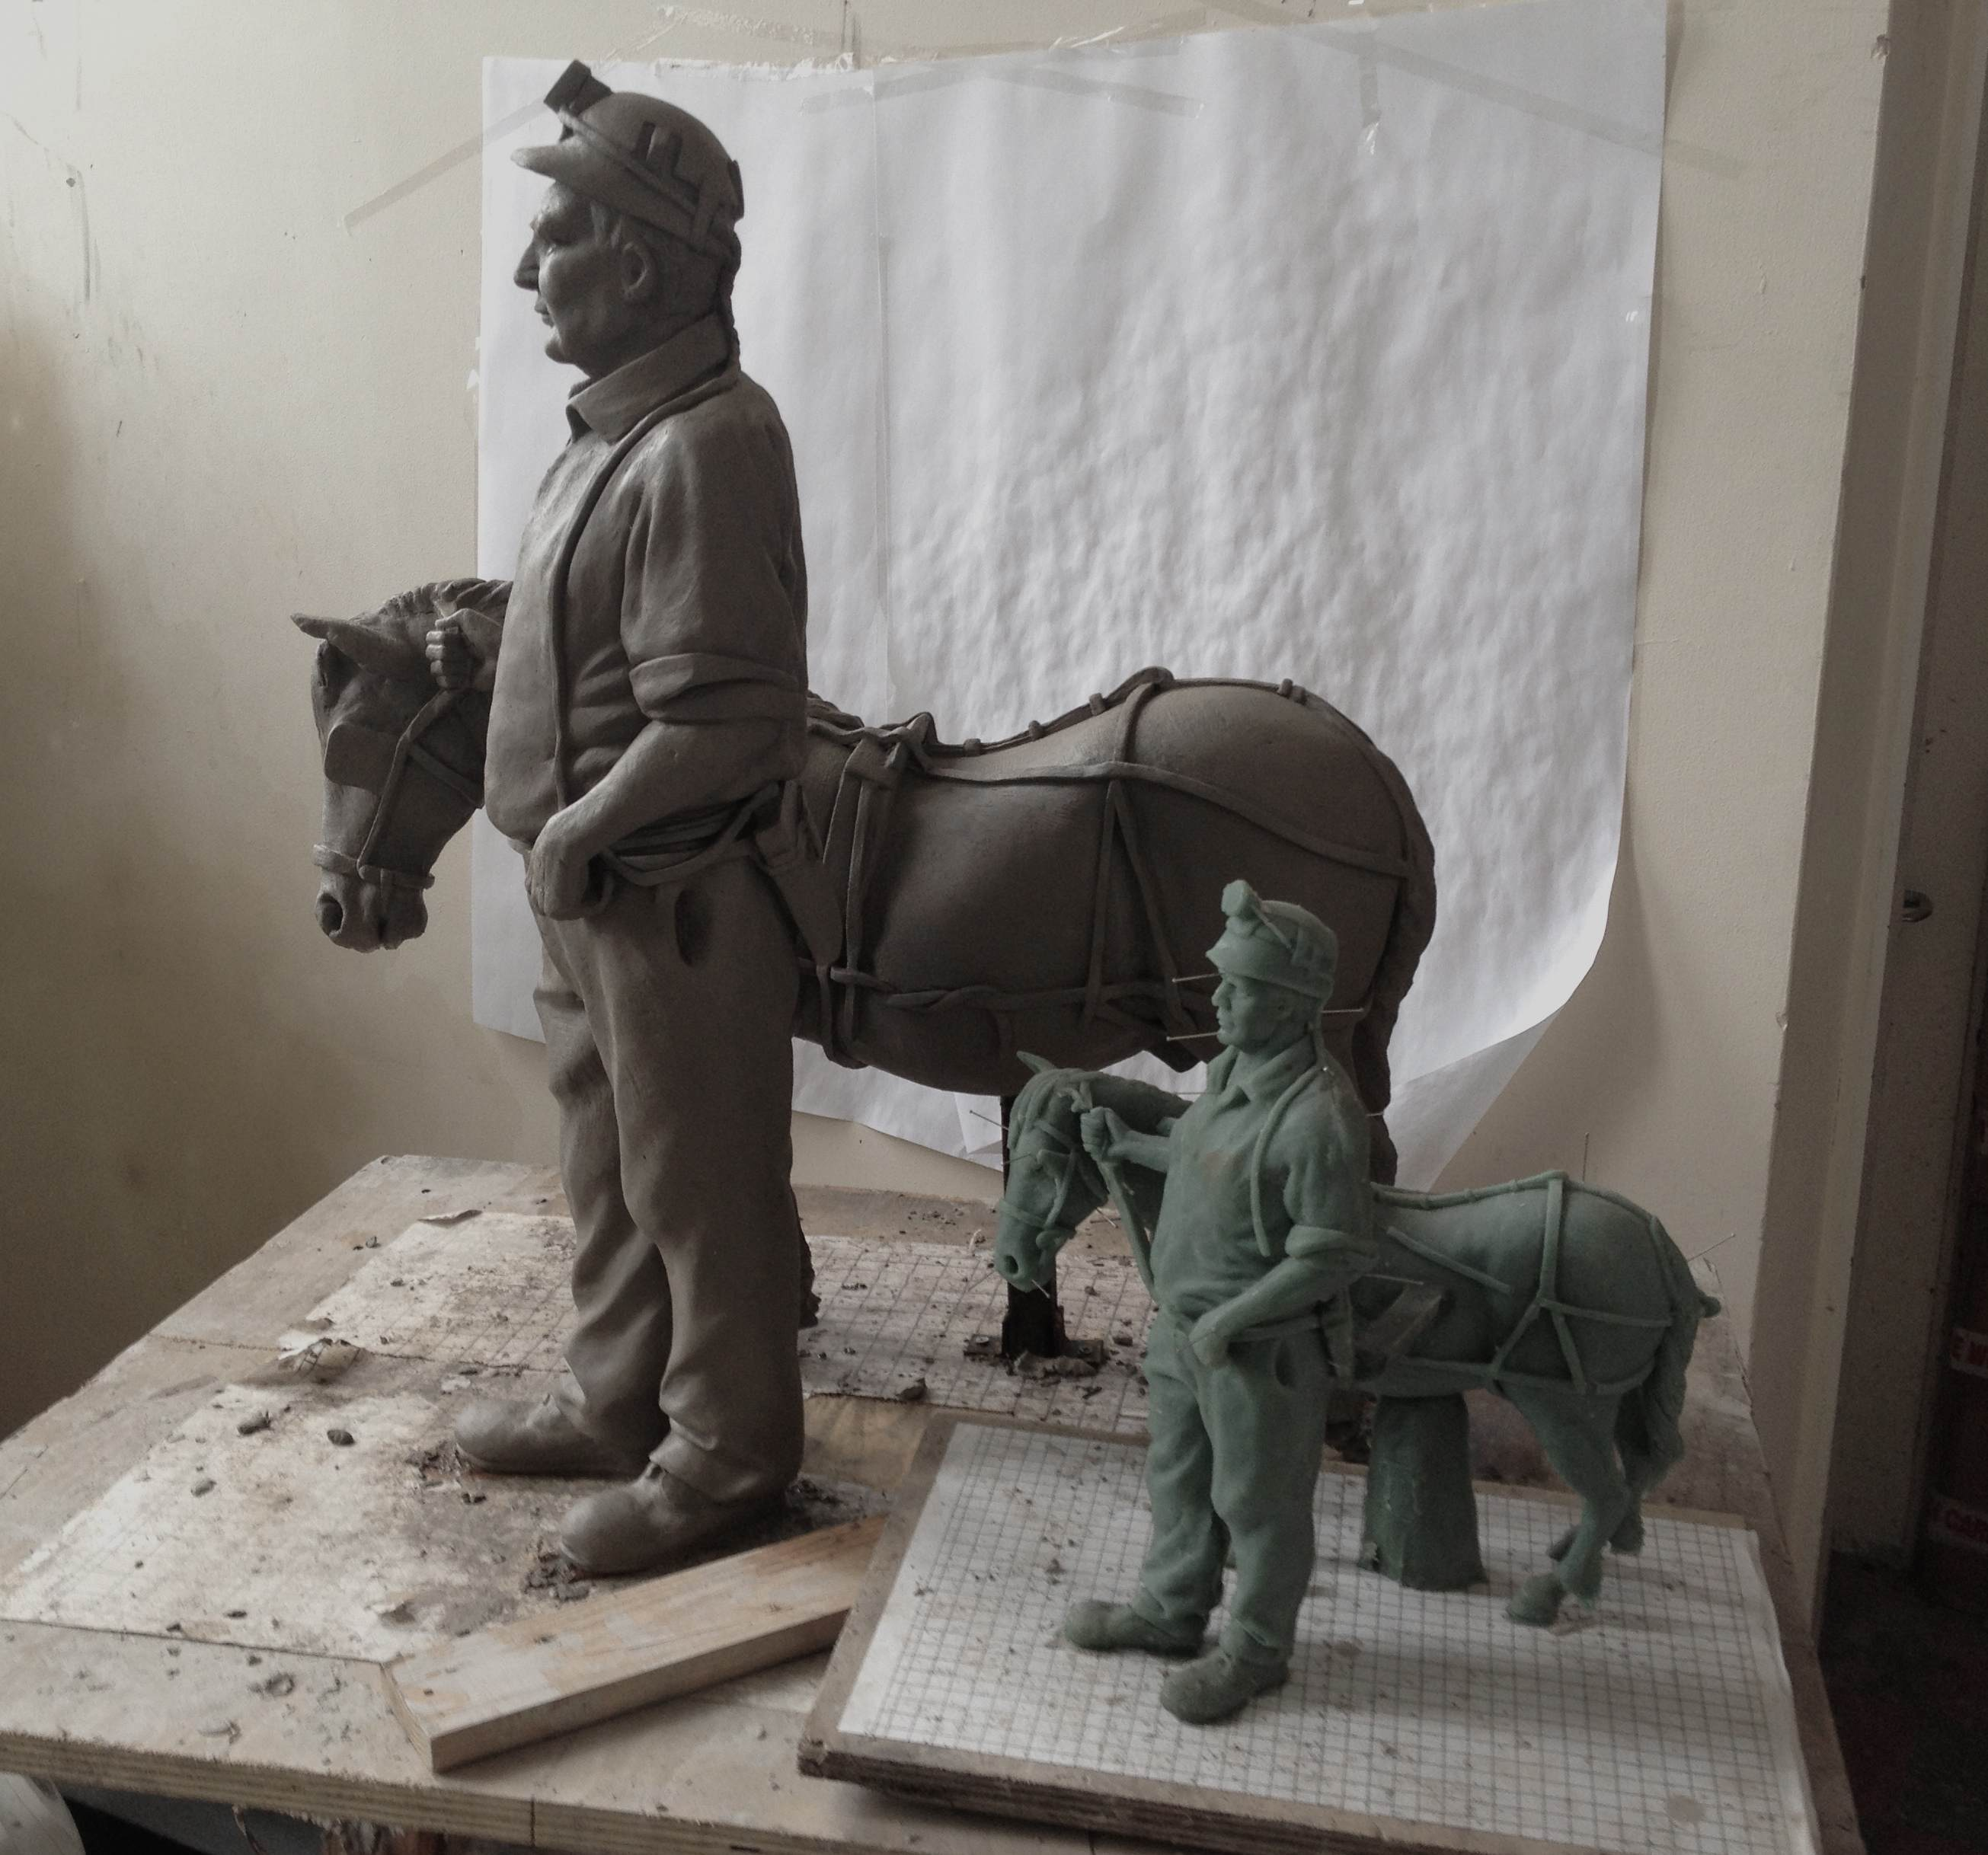 As he was working on the sculpture, the artist, Peter Walker, sent us some photos of his work in progress.